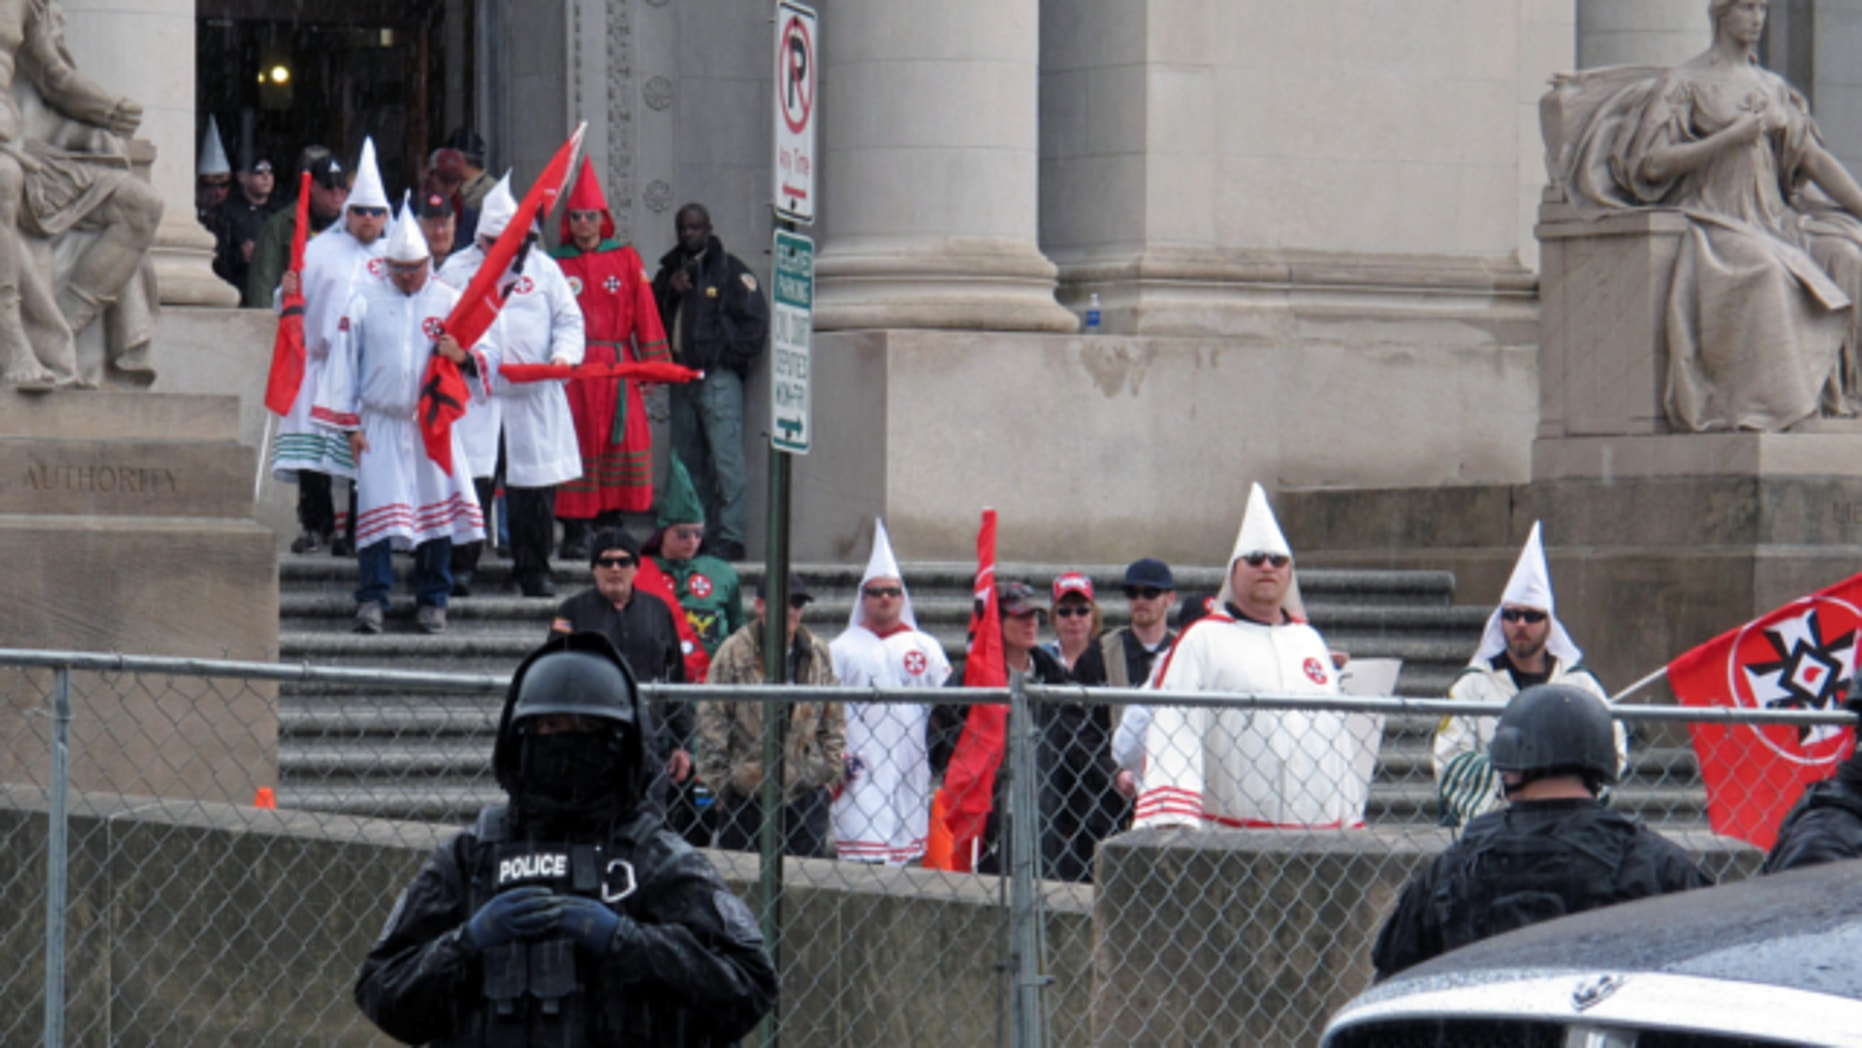 March 30, 2013: Ku Klux Klan members gather for a protest outside a courthouse in Memphis, Tenn.